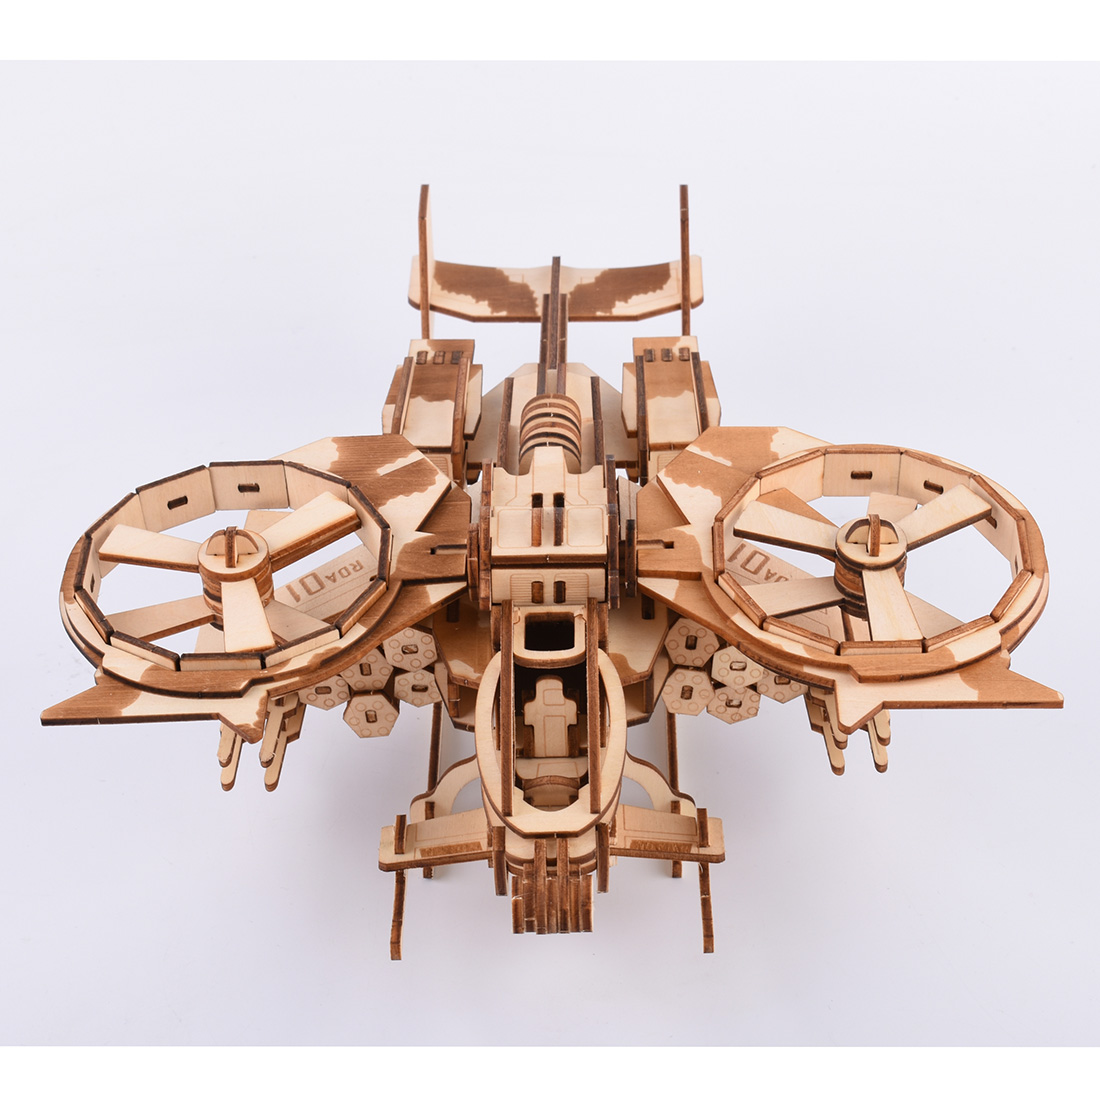 189pcs High-precision Laser Cutting Puzzle 3D Wooden Jigsaw Model Building Kits Airplaine Toys & Hobbies Drop Shipping